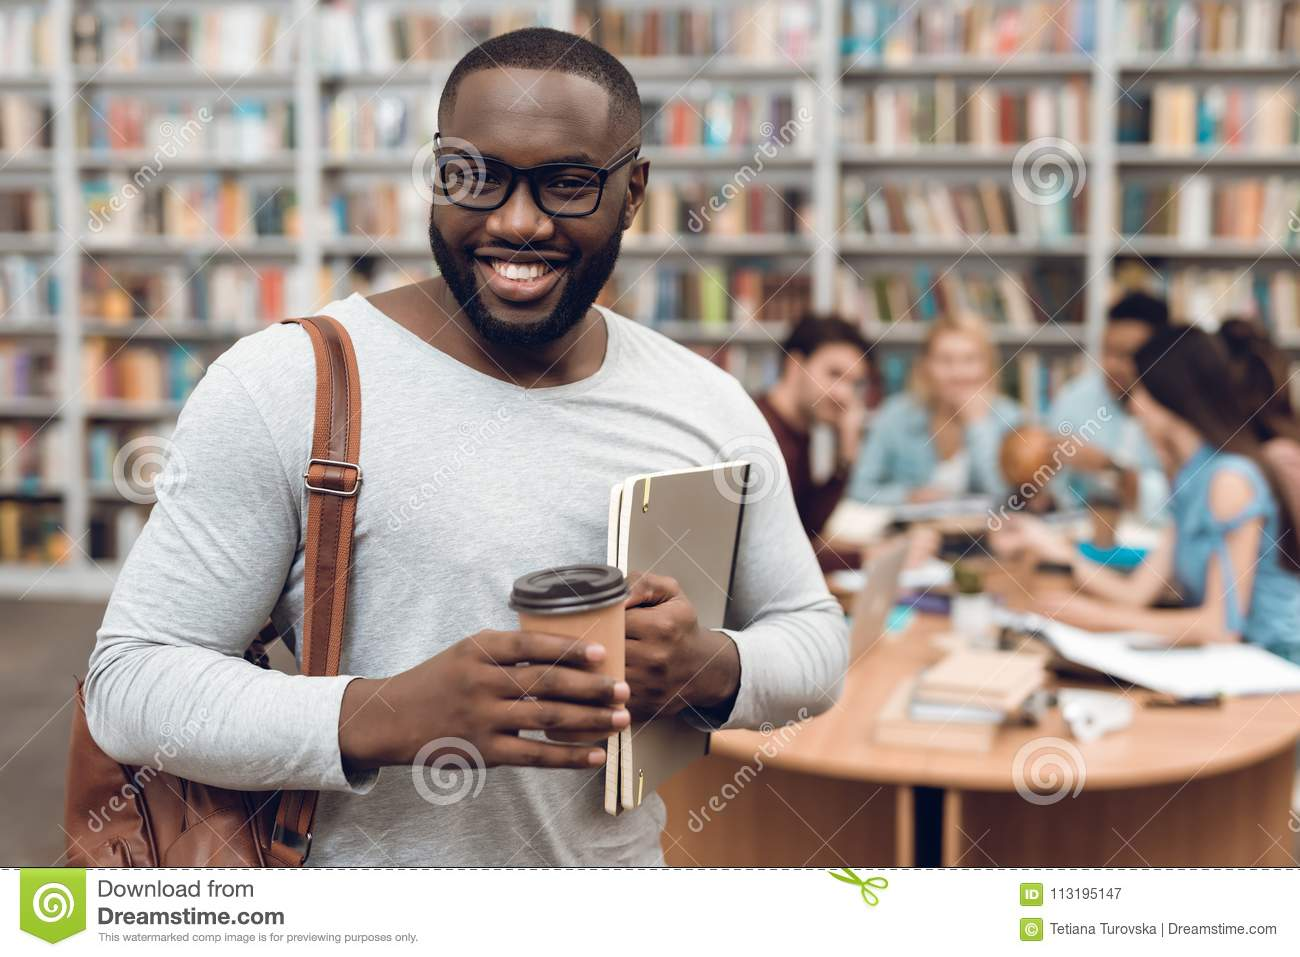 Group of ethnic multicultural students in library. Black guy with notes and coffee.